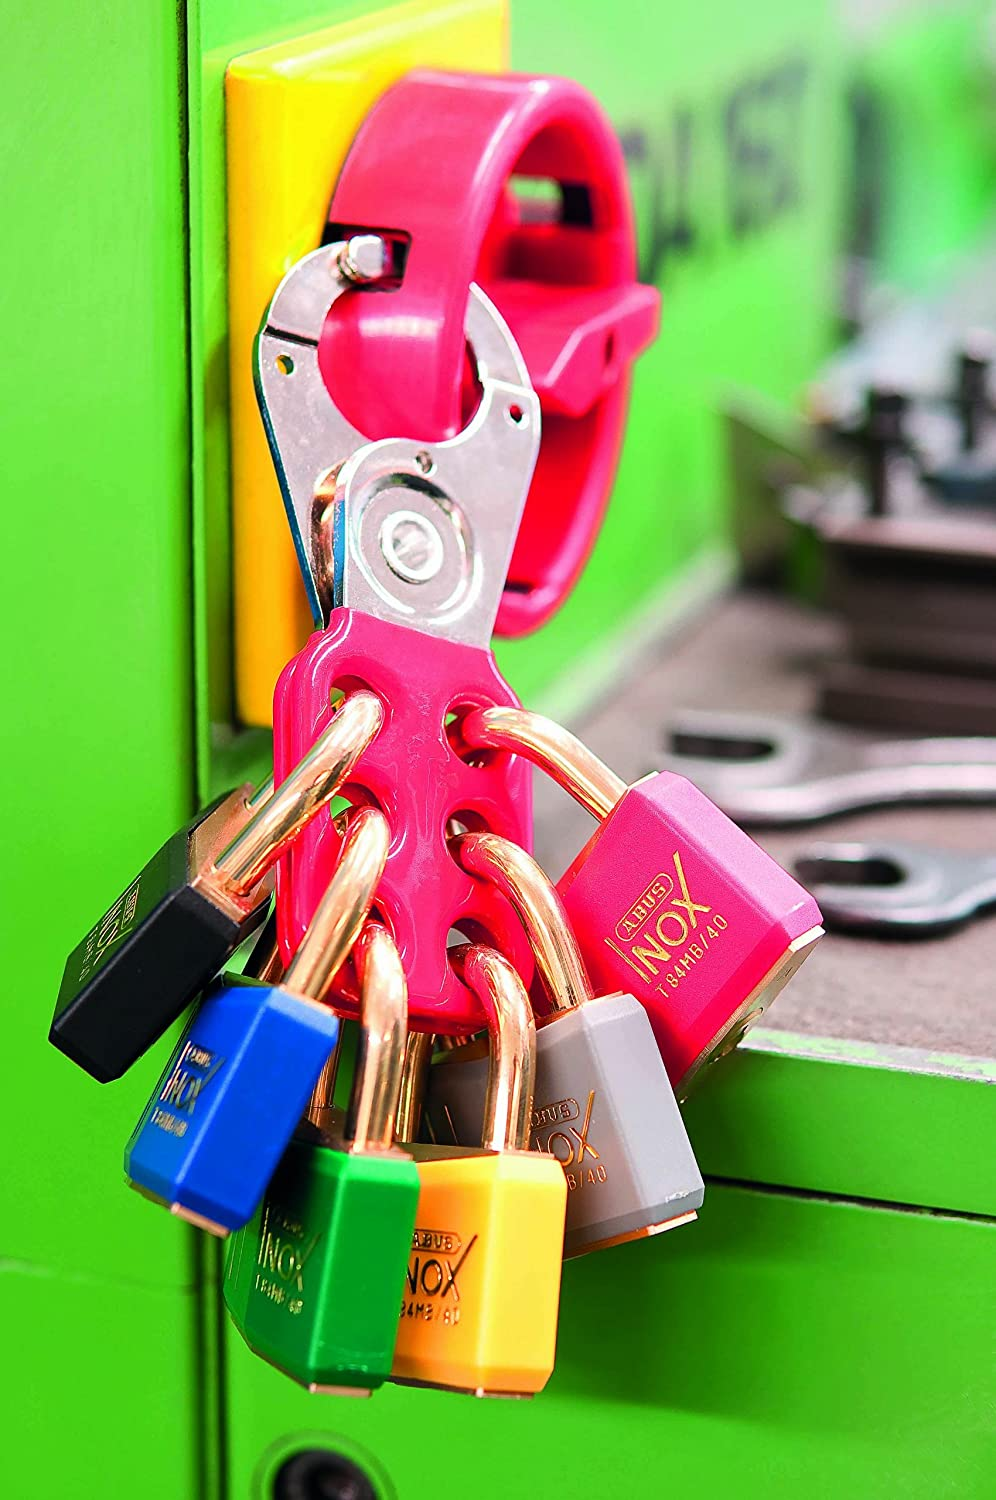 801 Lock Out Hasp 1in Rouge avec pince ABU801R Abus